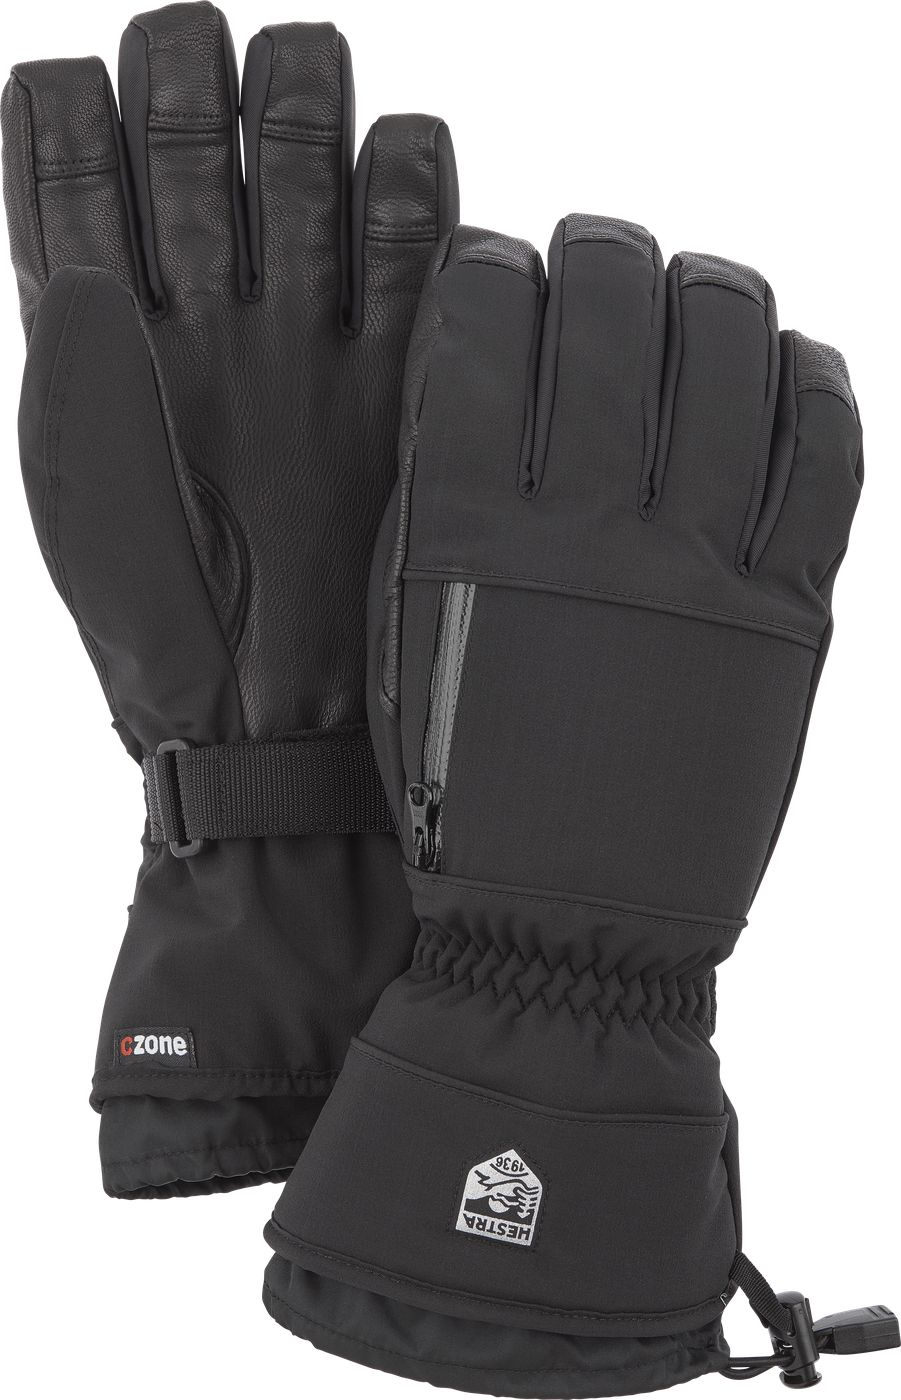 Hestra CZone Pointer 5-Finger Glove